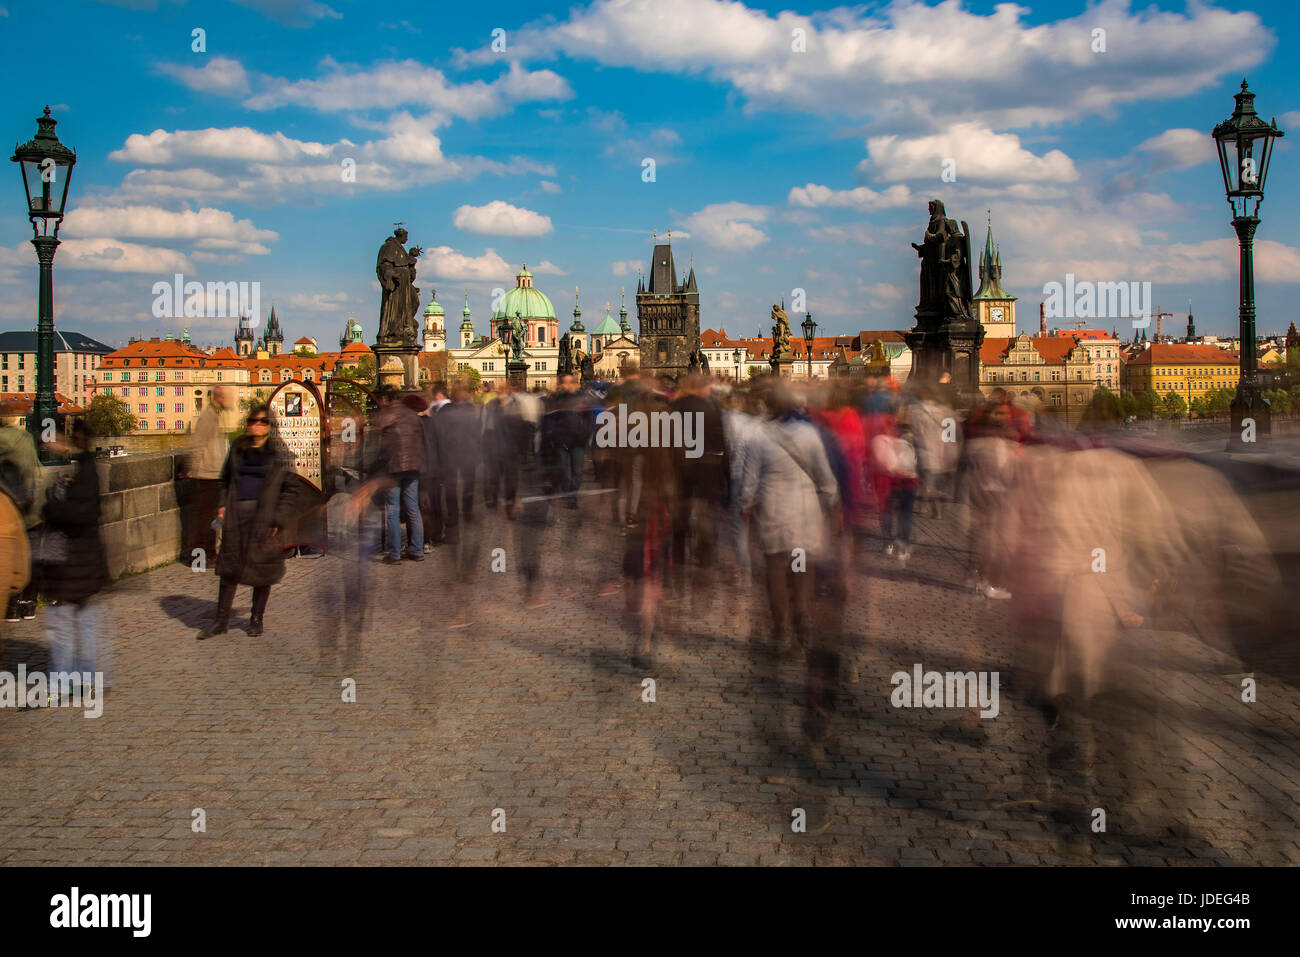 Crowds of tourists on Charles Bridge, Prague, Bohemia, Czech Republic - Stock Image